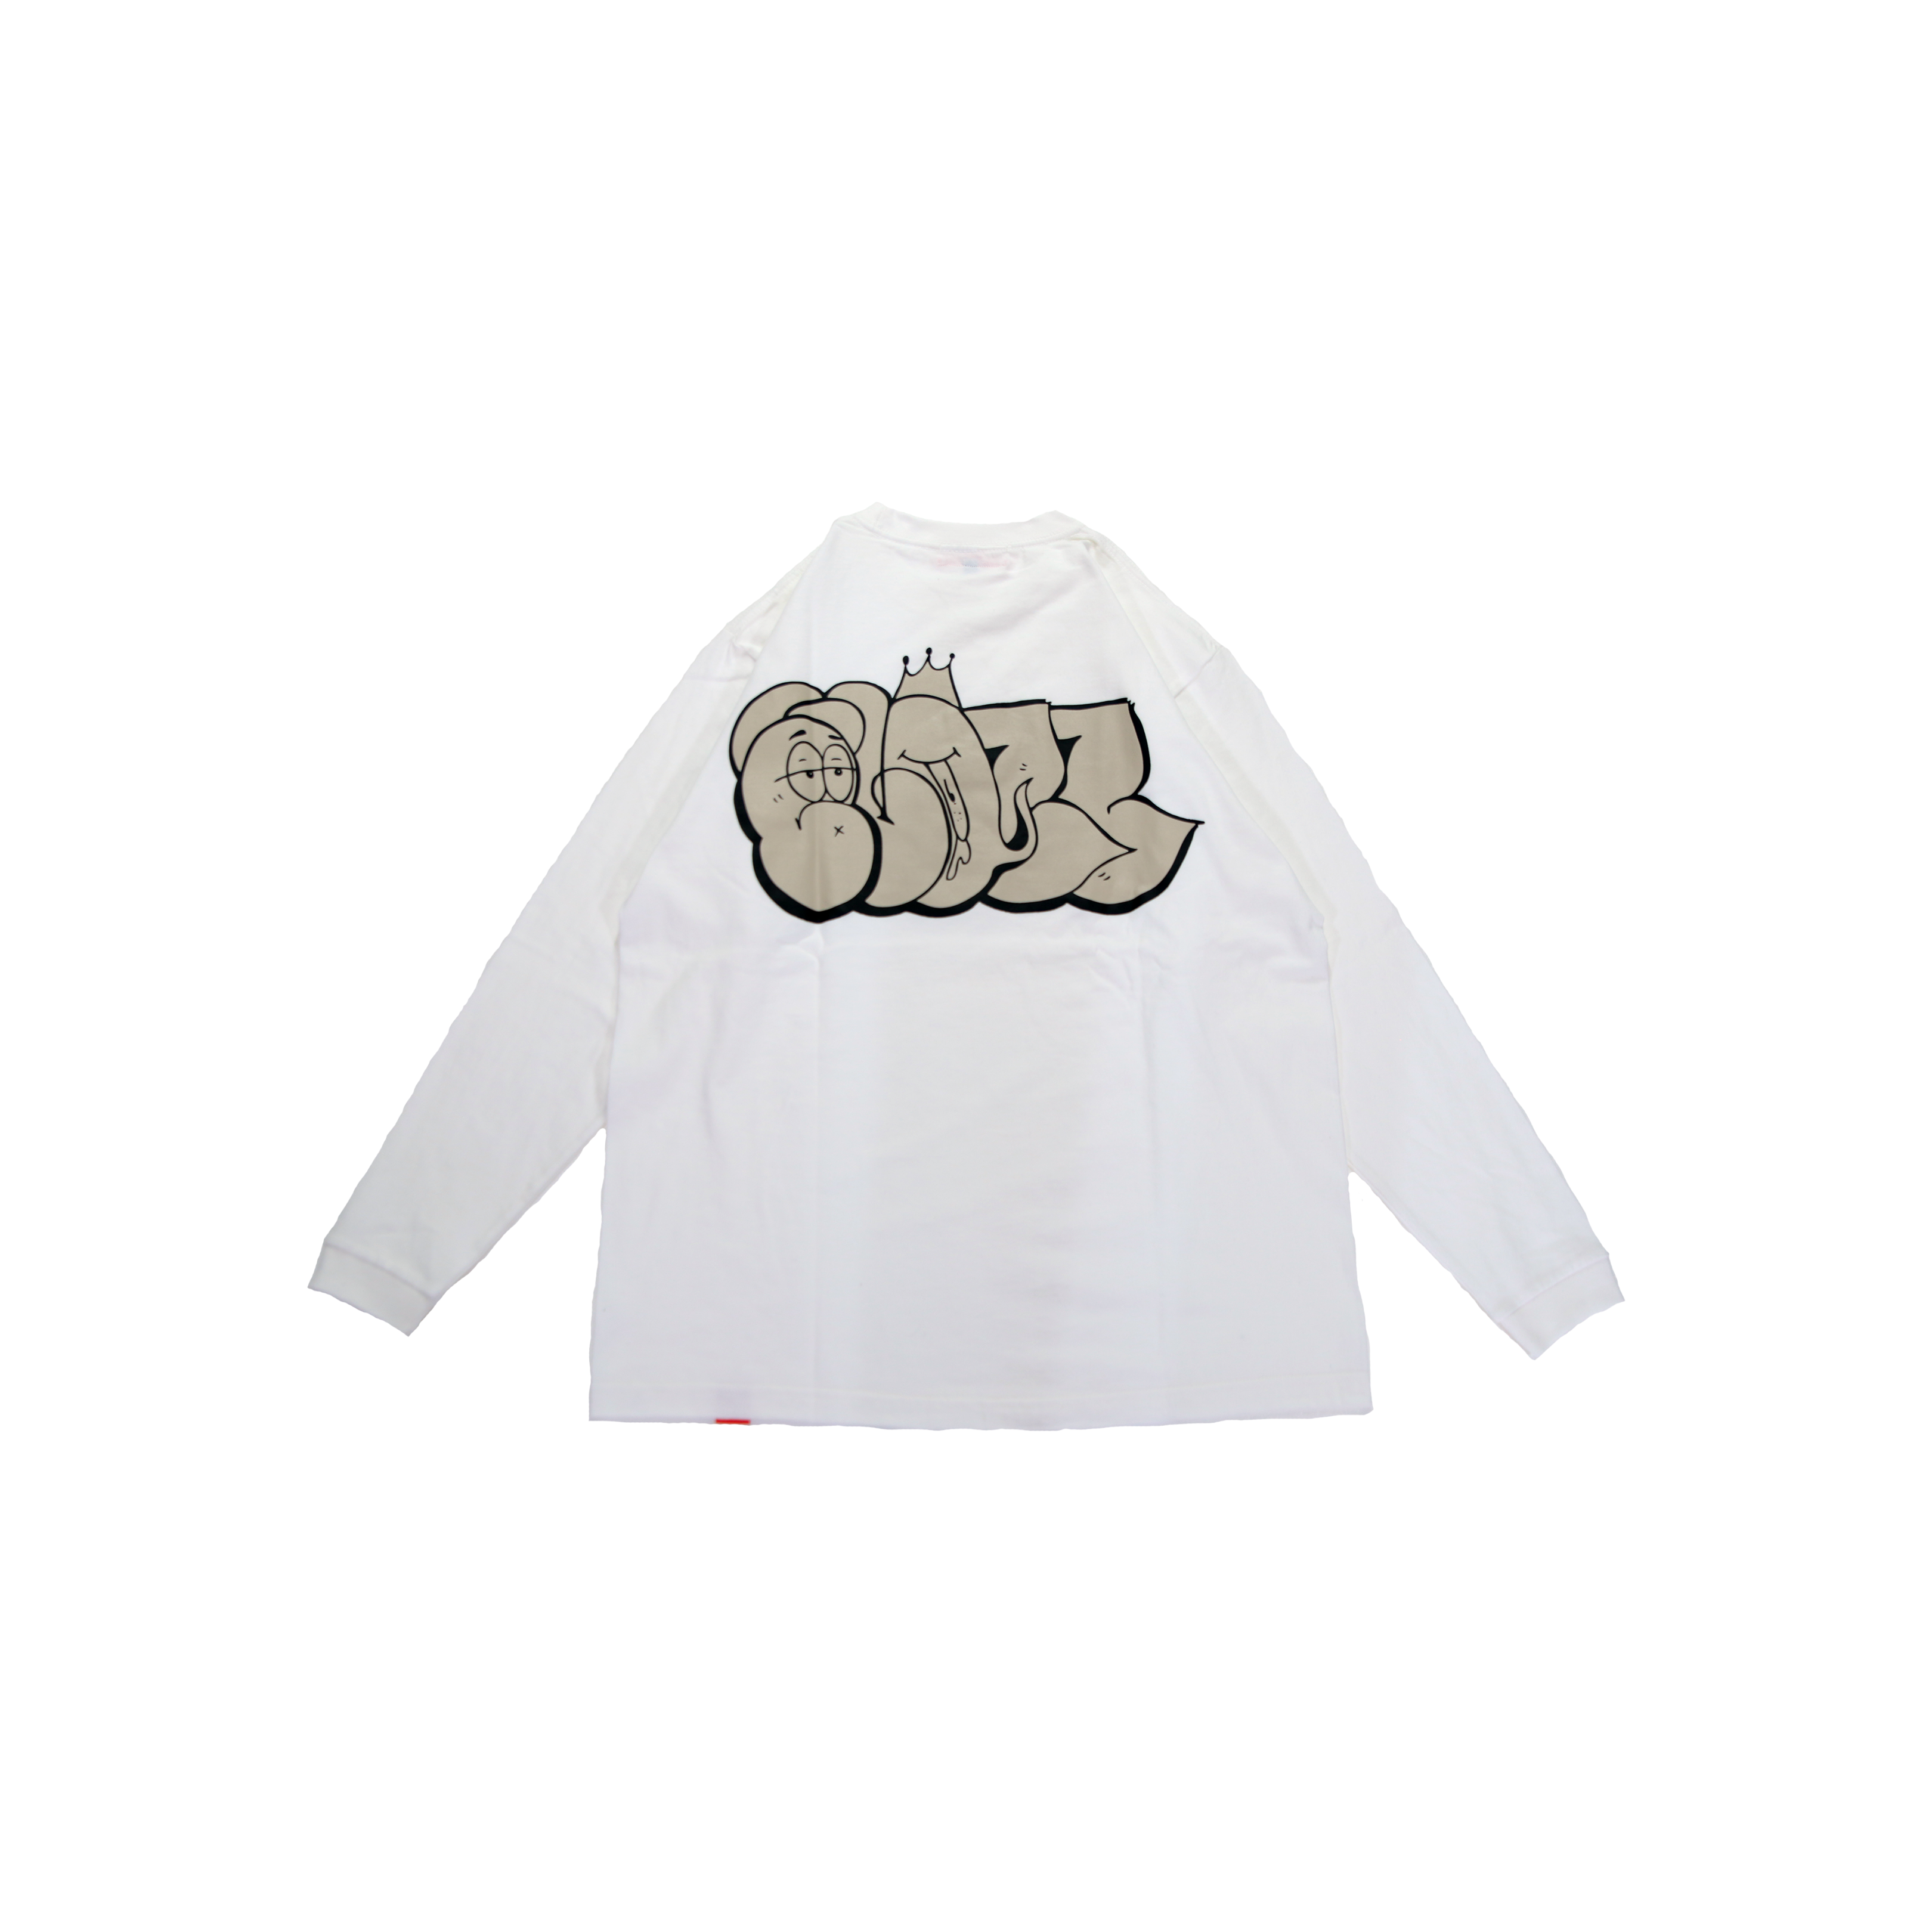 BLAZZ by IRA HEAVY L/S TEE [WHITE]